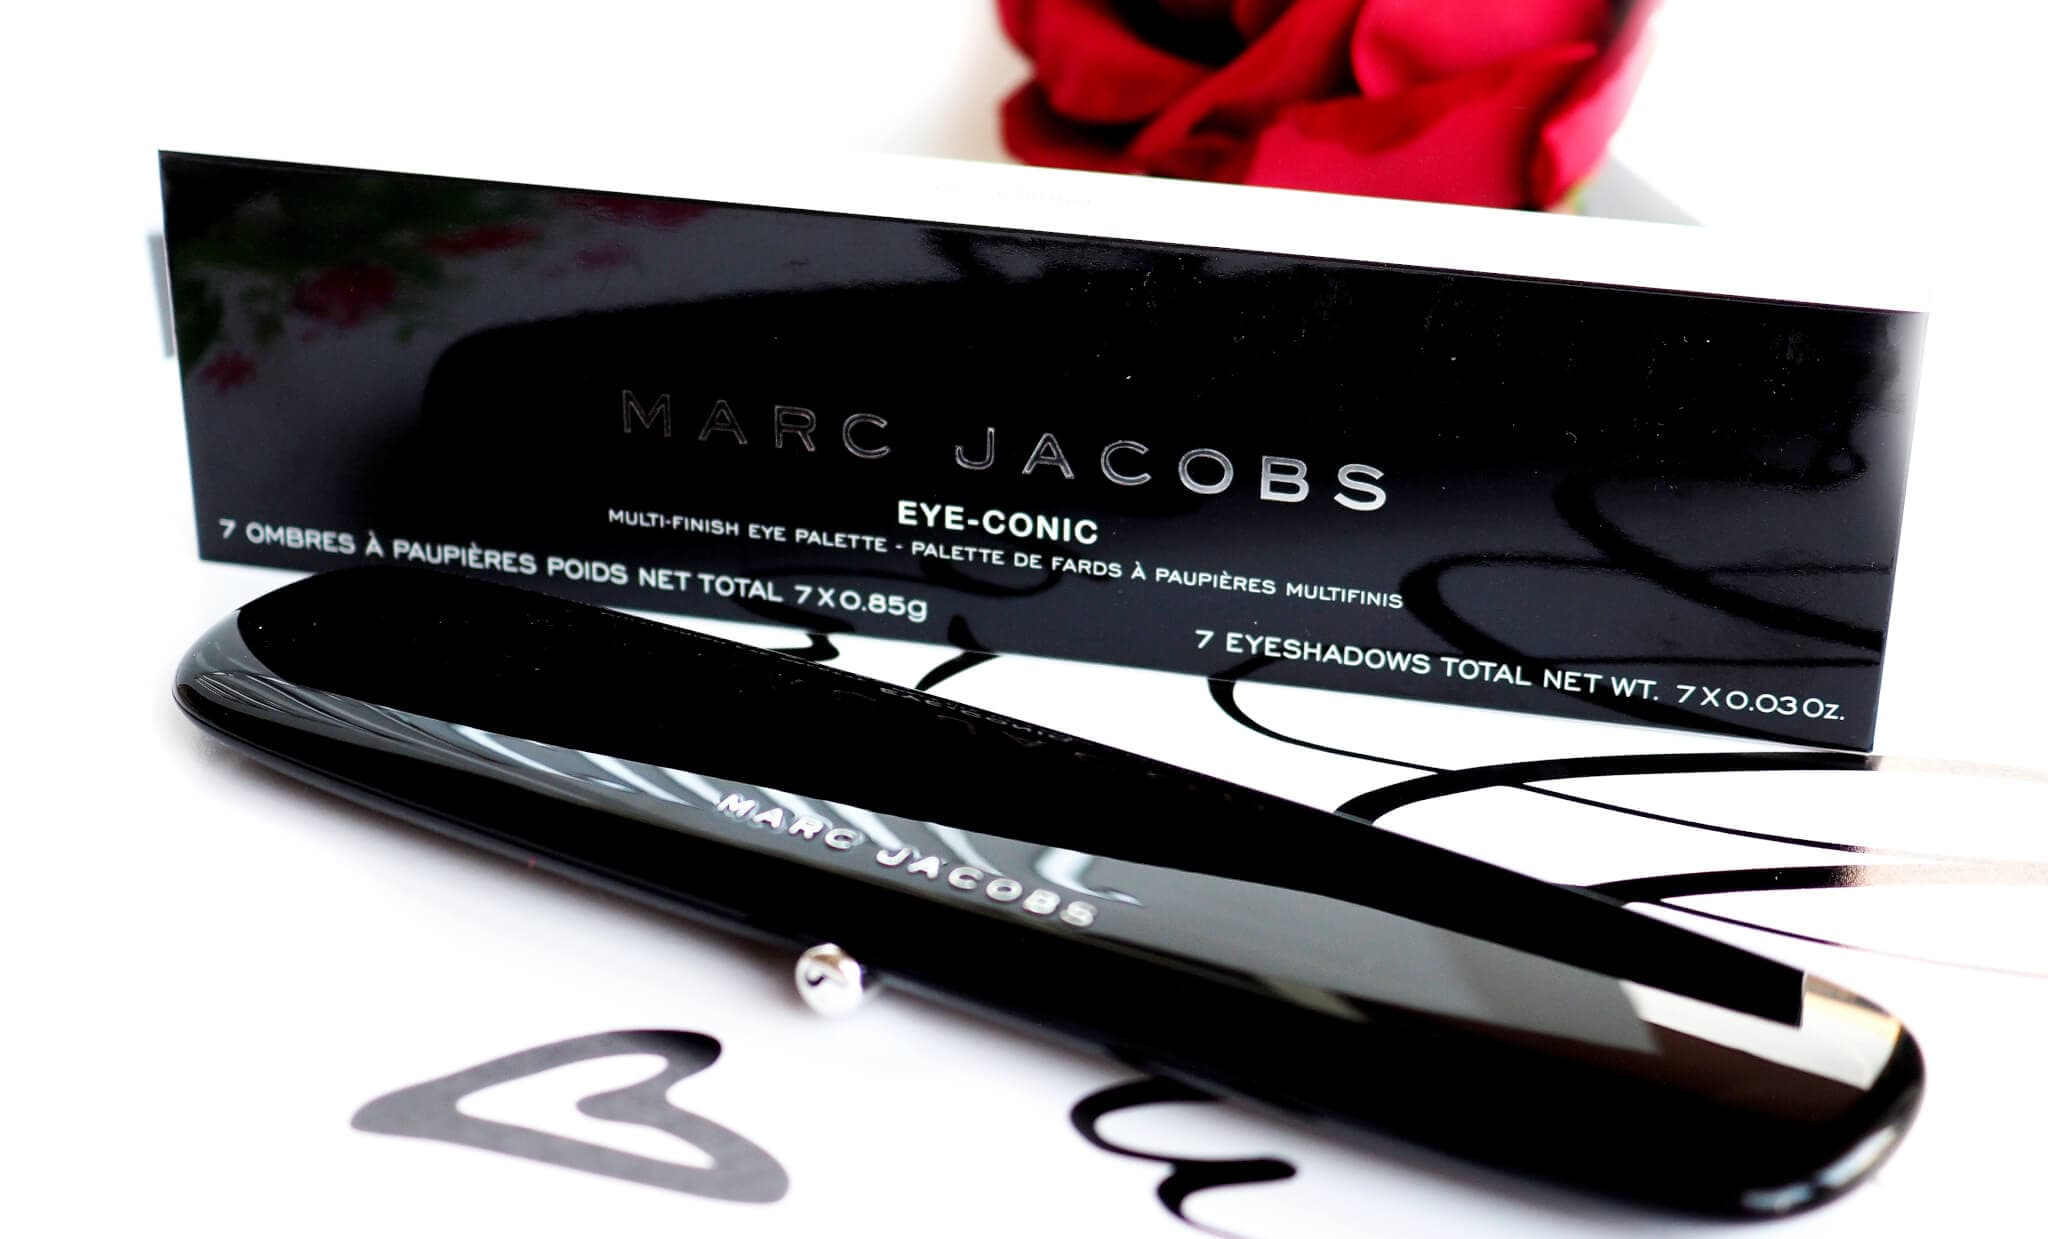 MARC JACOBS EYE-CONIC PROVOCOUTURE